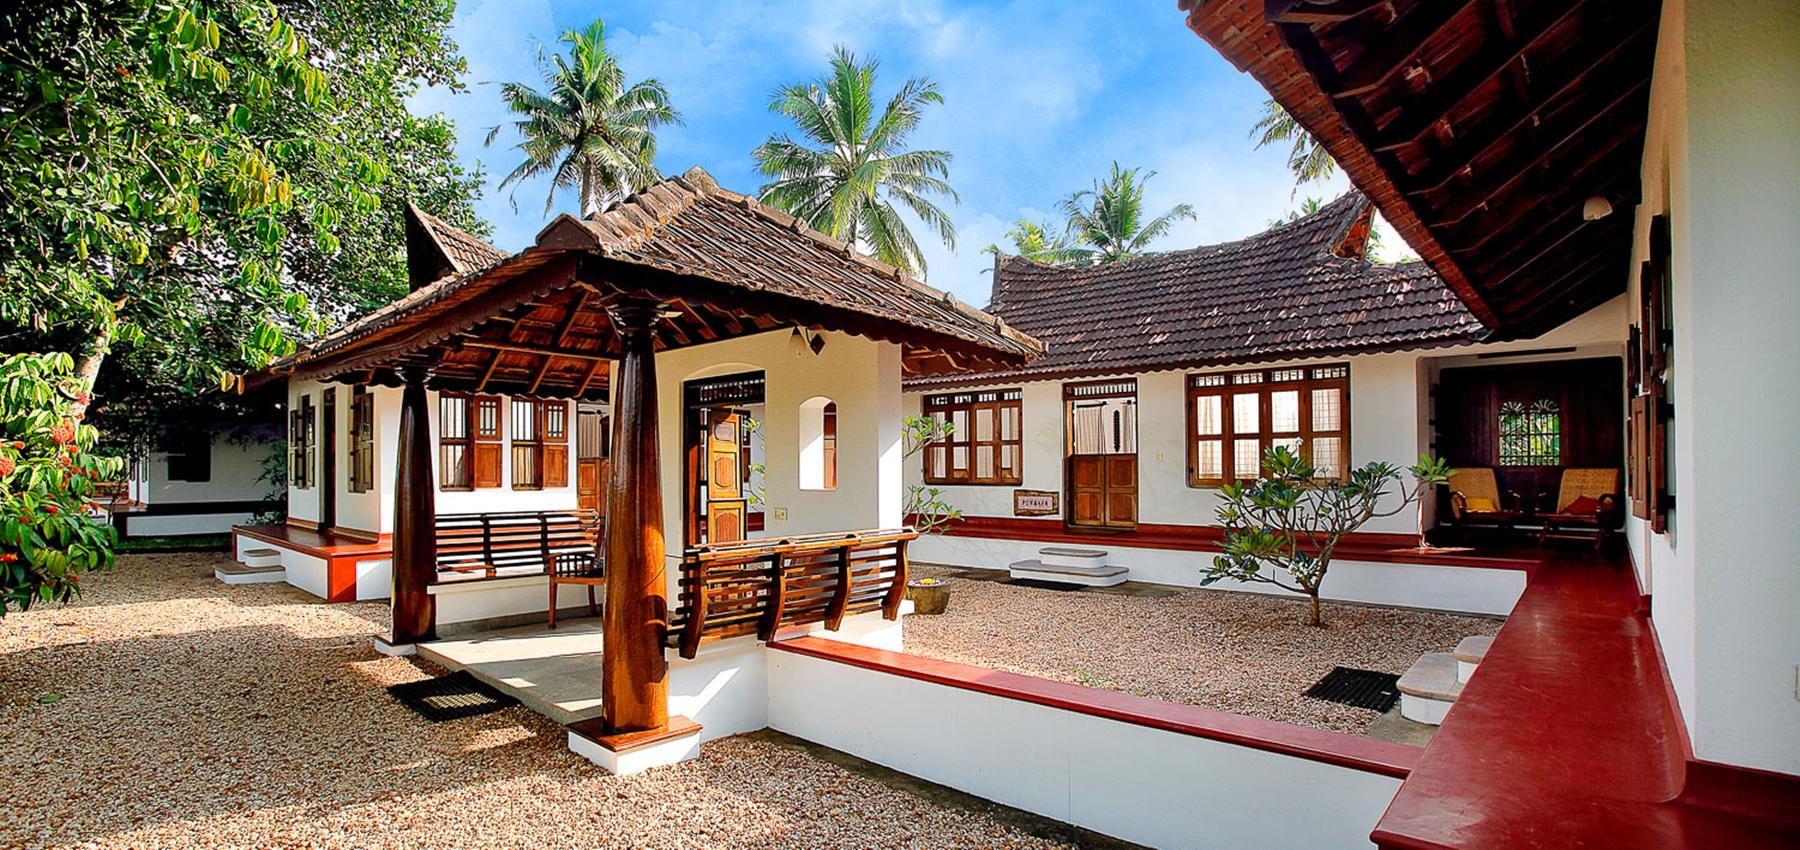 Farm Stays in Kerala